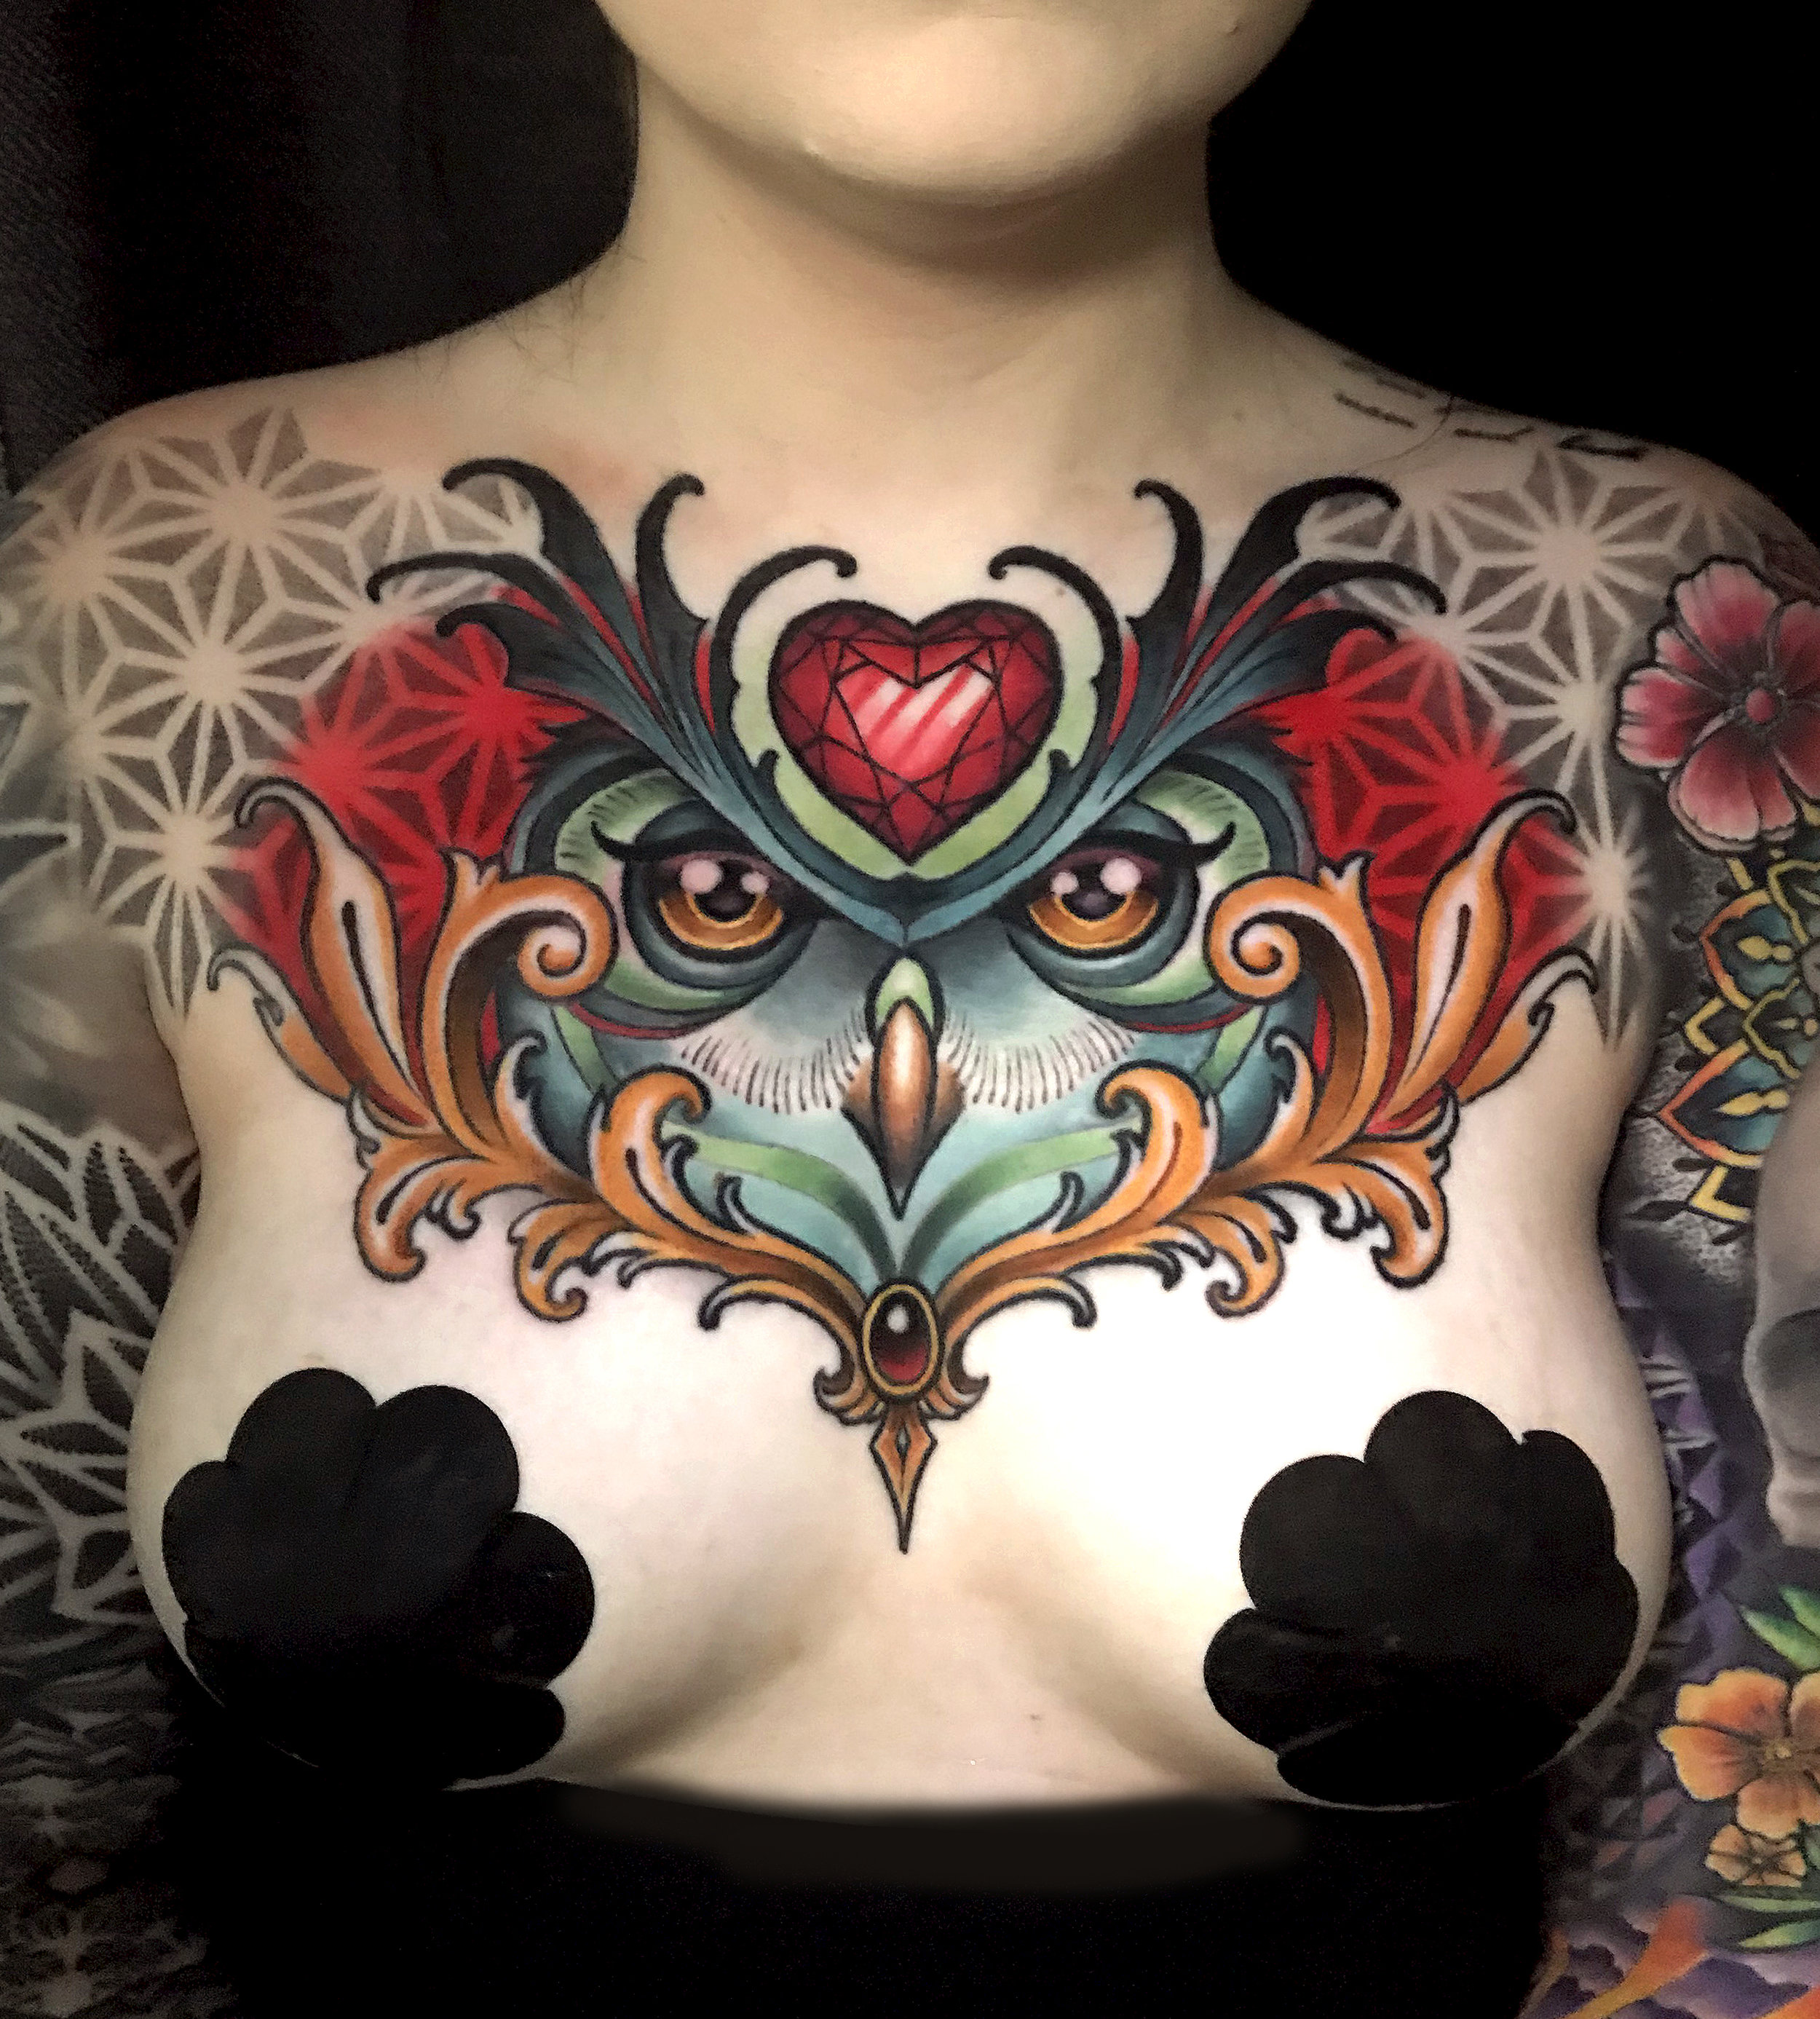 collab owl chest piece tattoo london reese brad reis 2.jpg